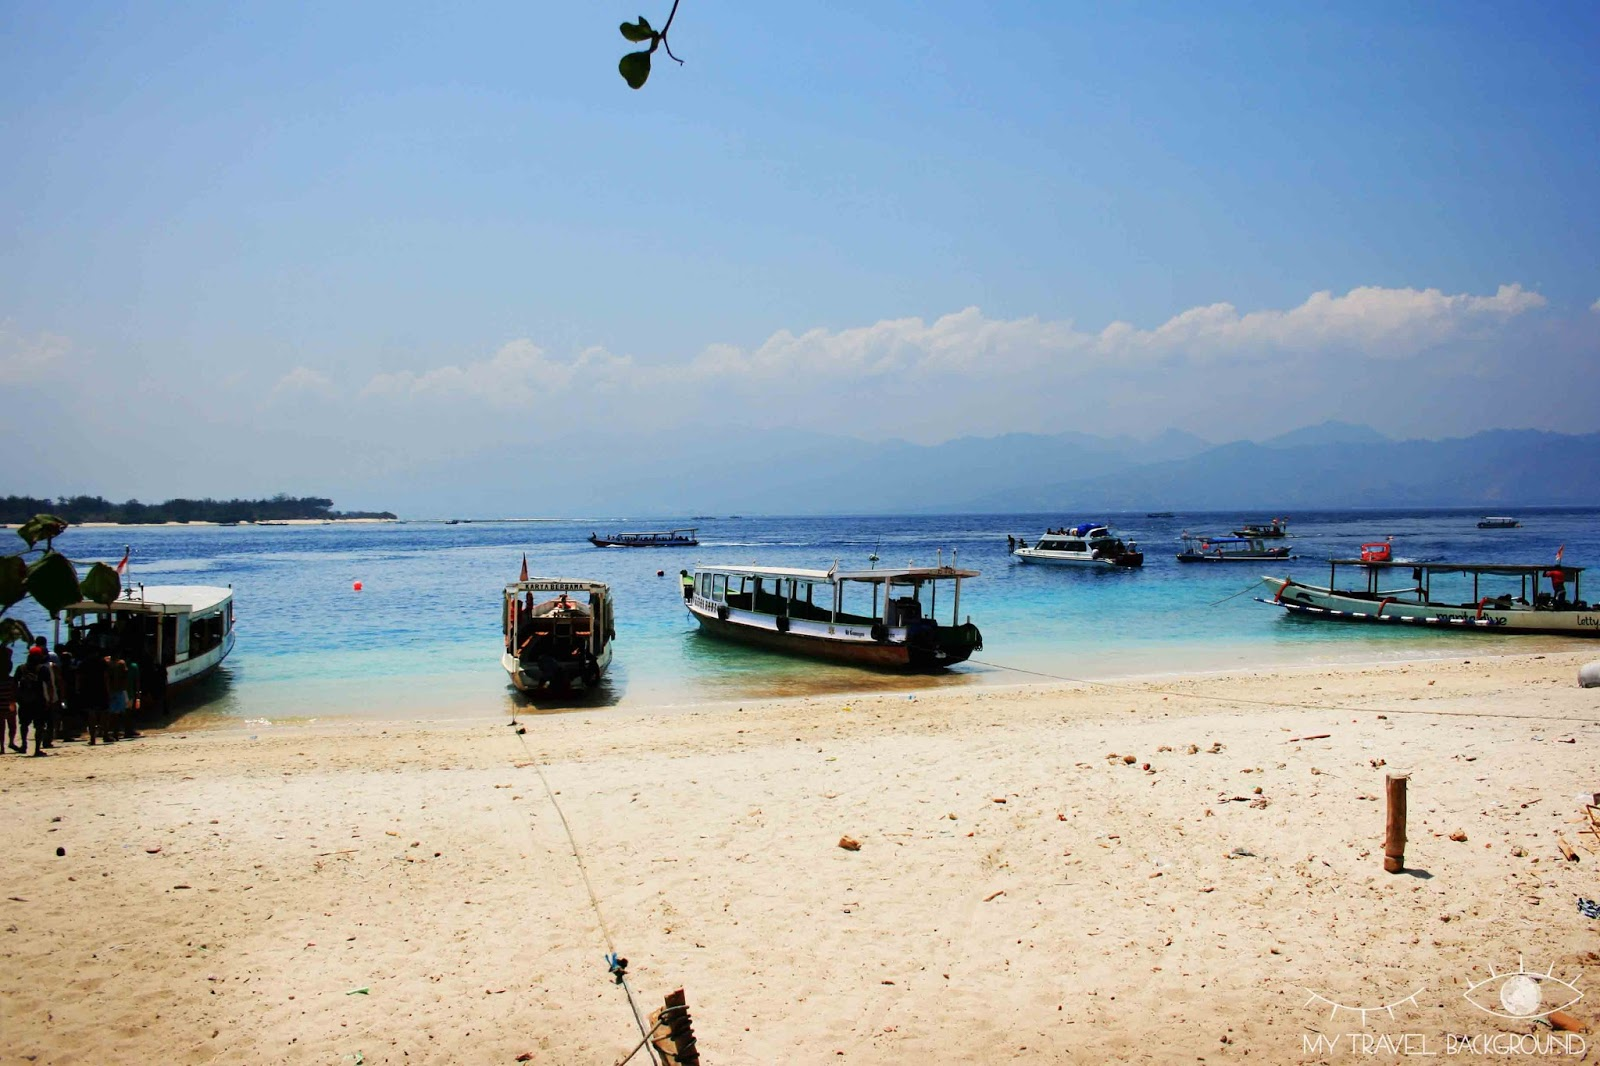 My Travel Background : 2 jours sur l'île de Gili Trawangan